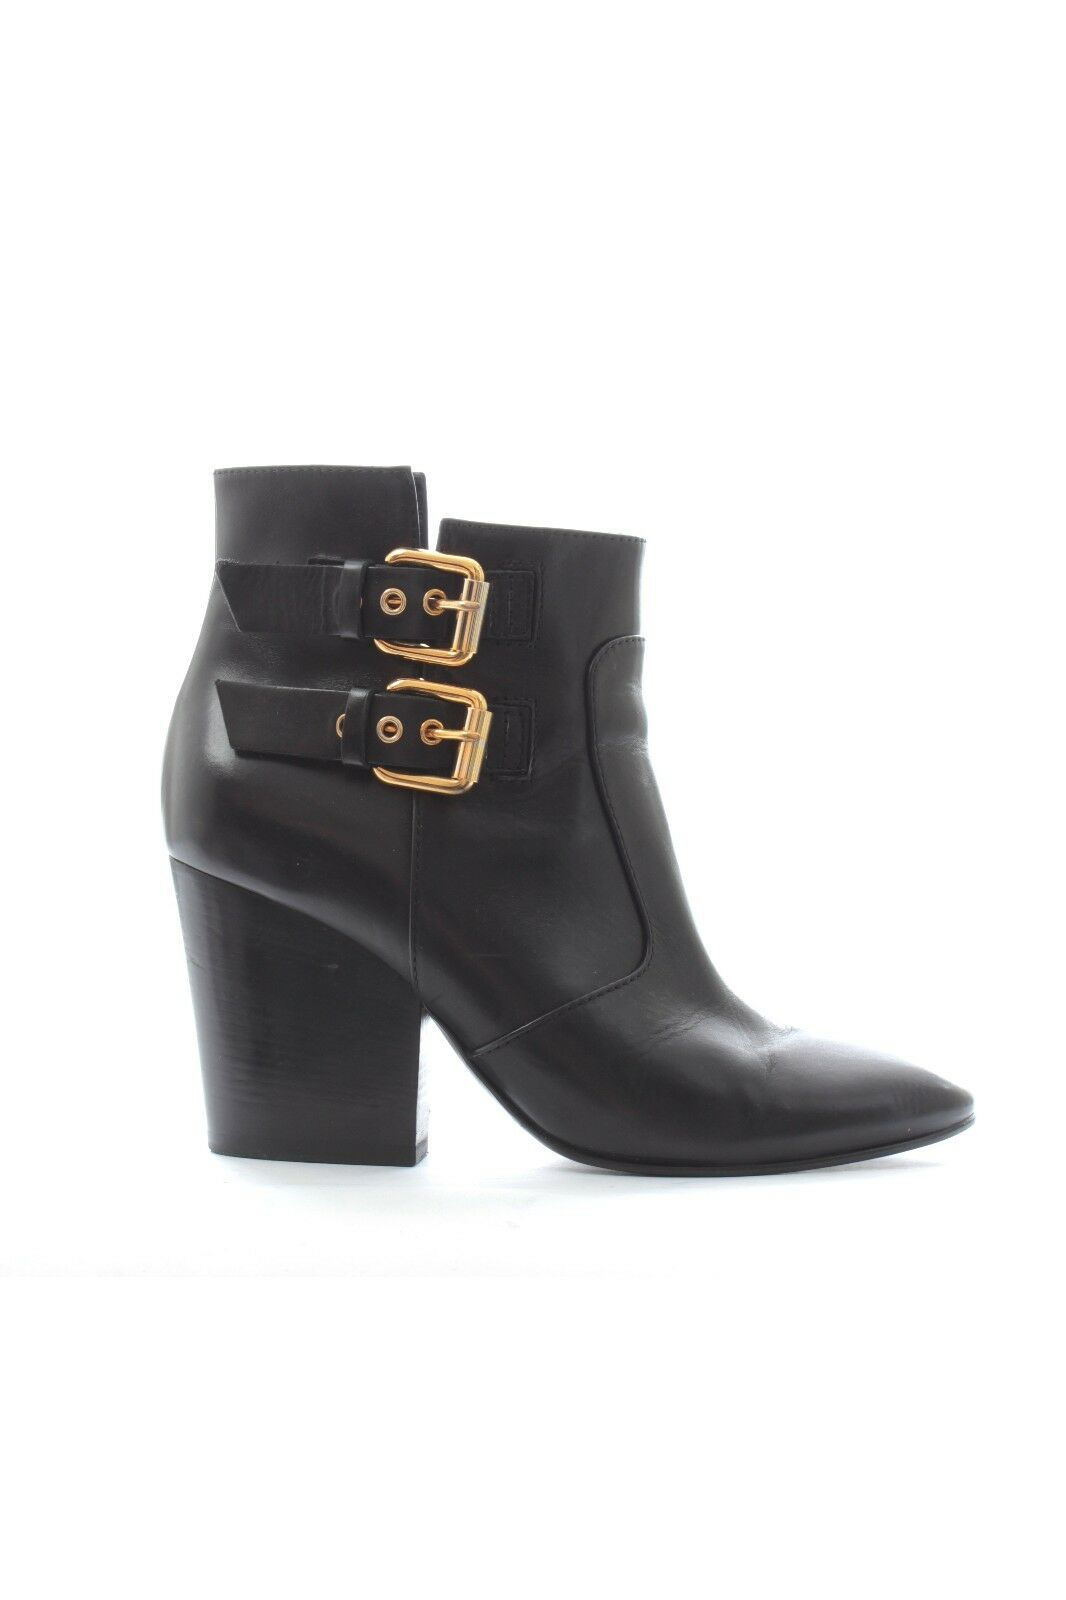 Giuseppe Zanotti Buckle Leather Ankle Boots / Black / RRP: .00